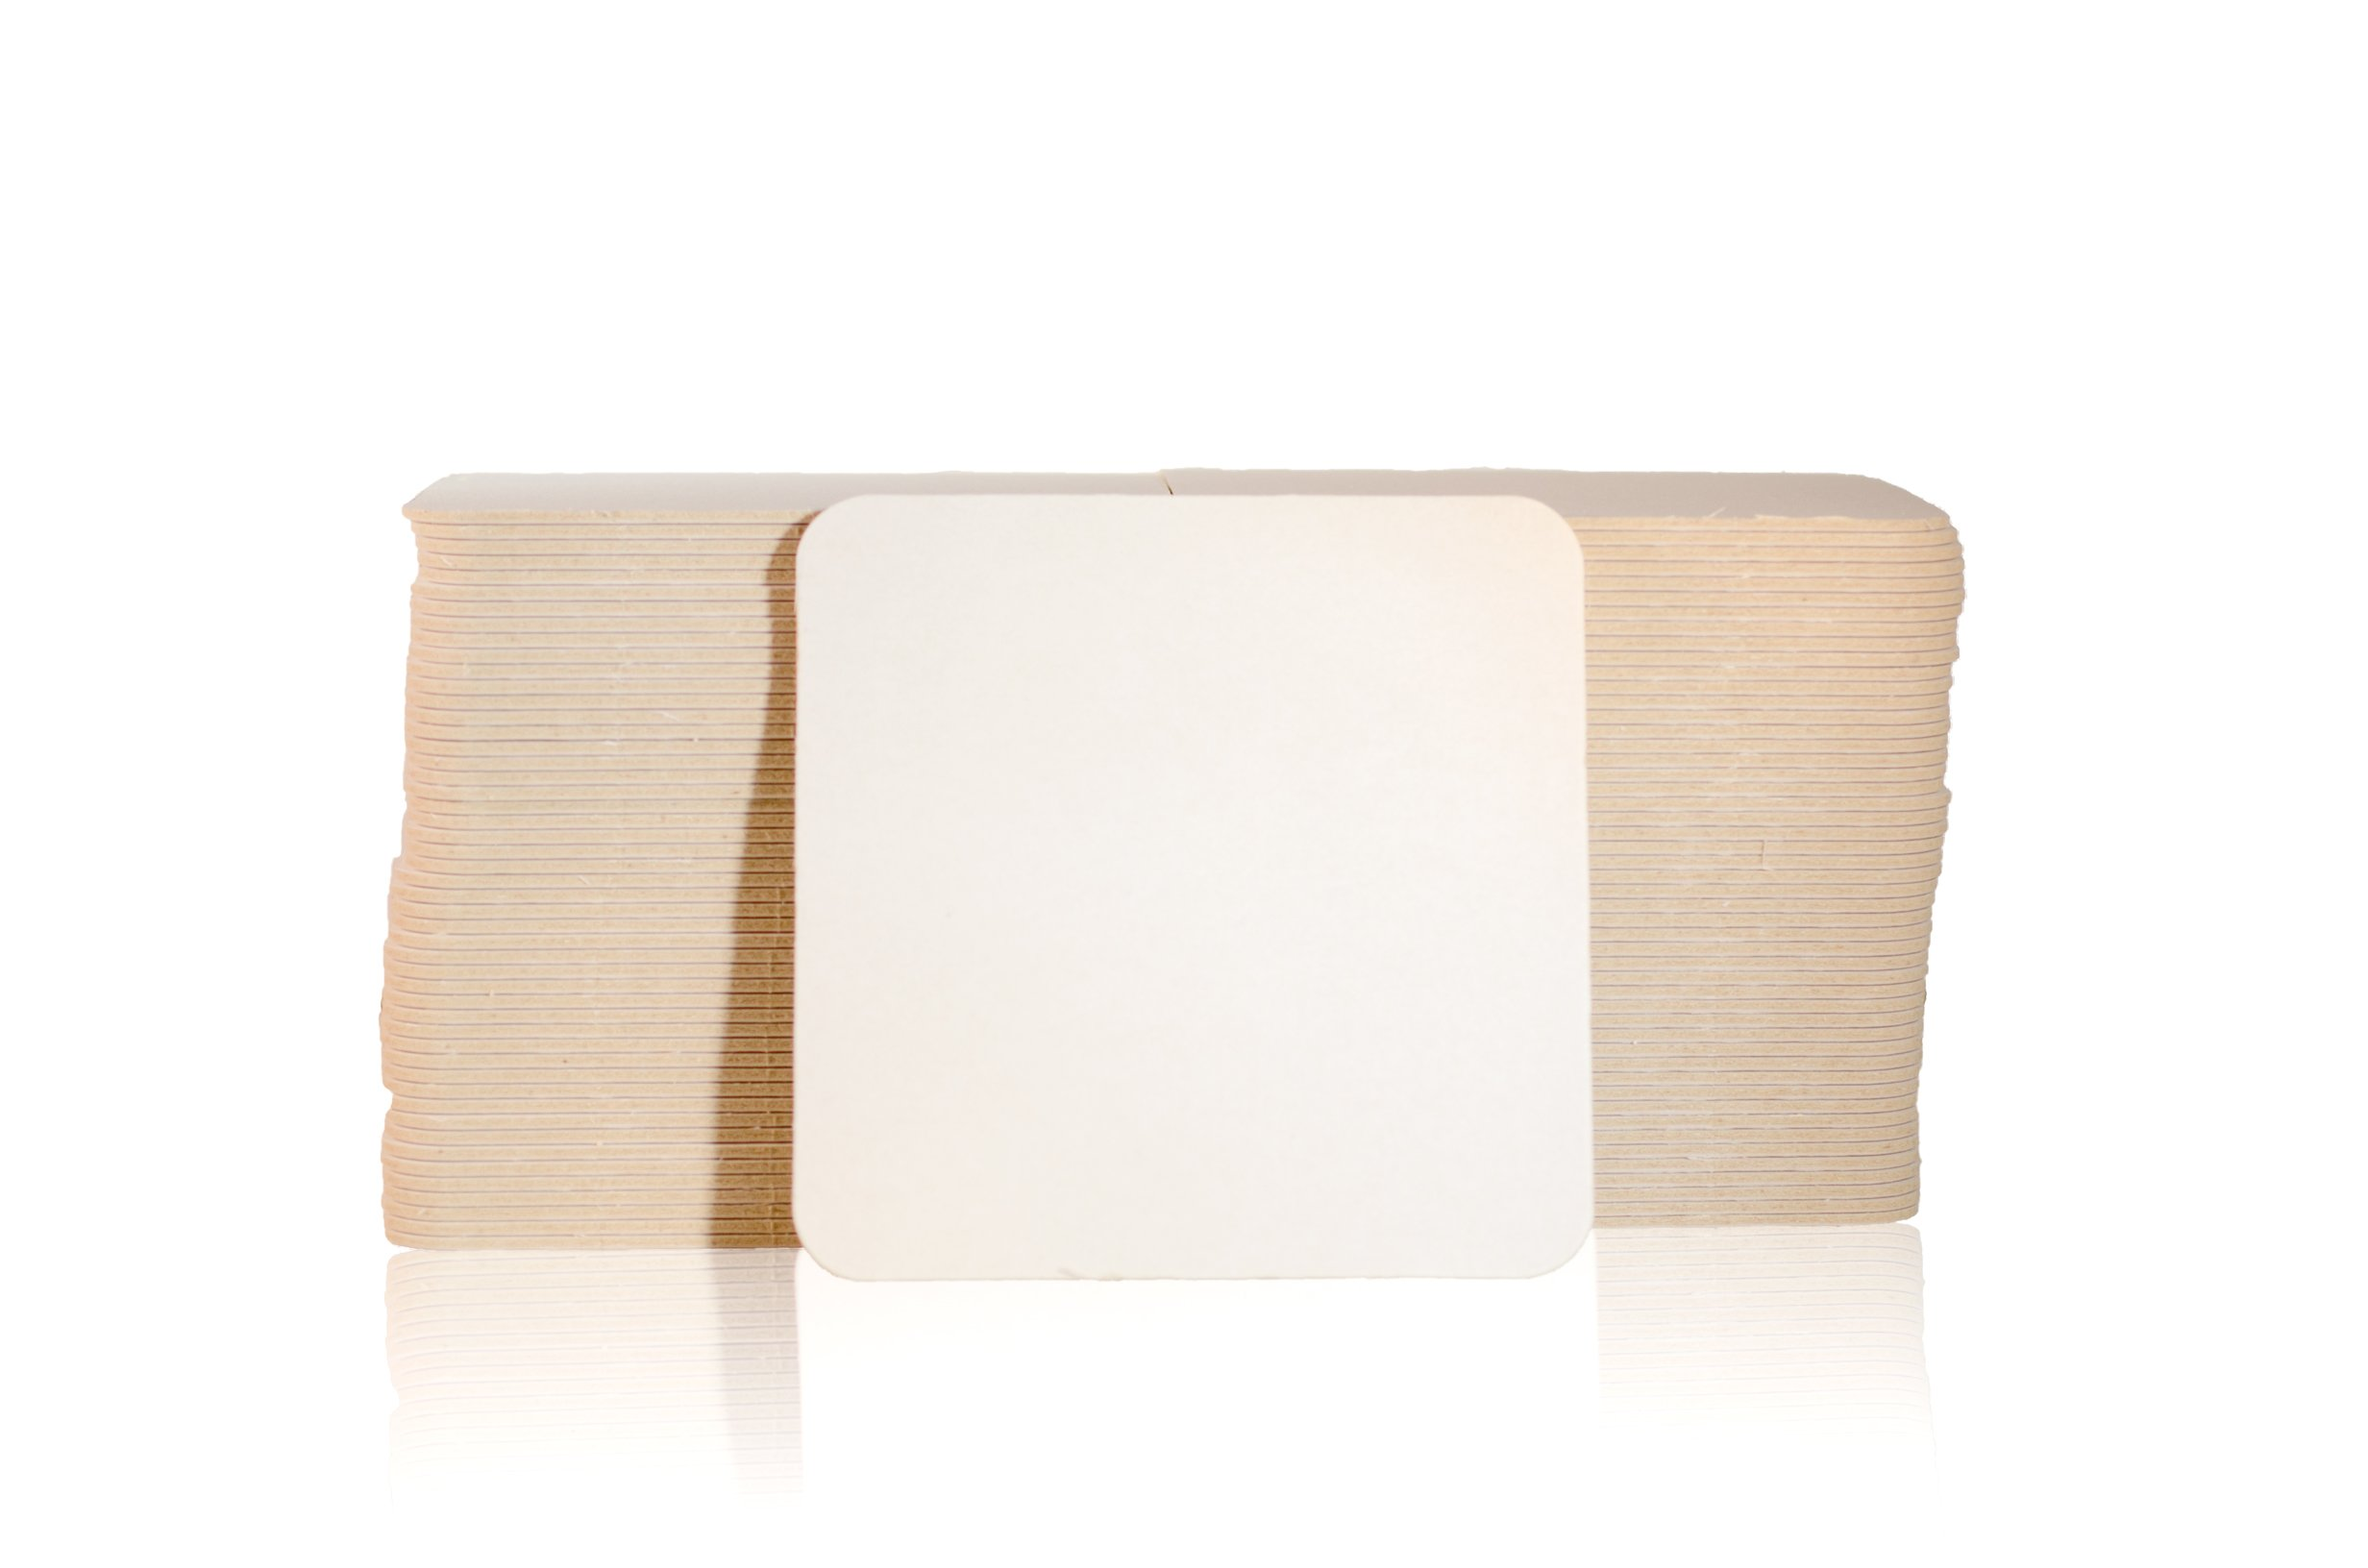 Katz Americas 4'' Square Heavyweight (35pt) Blank Pulpboard Coaster (Case of 1,000)